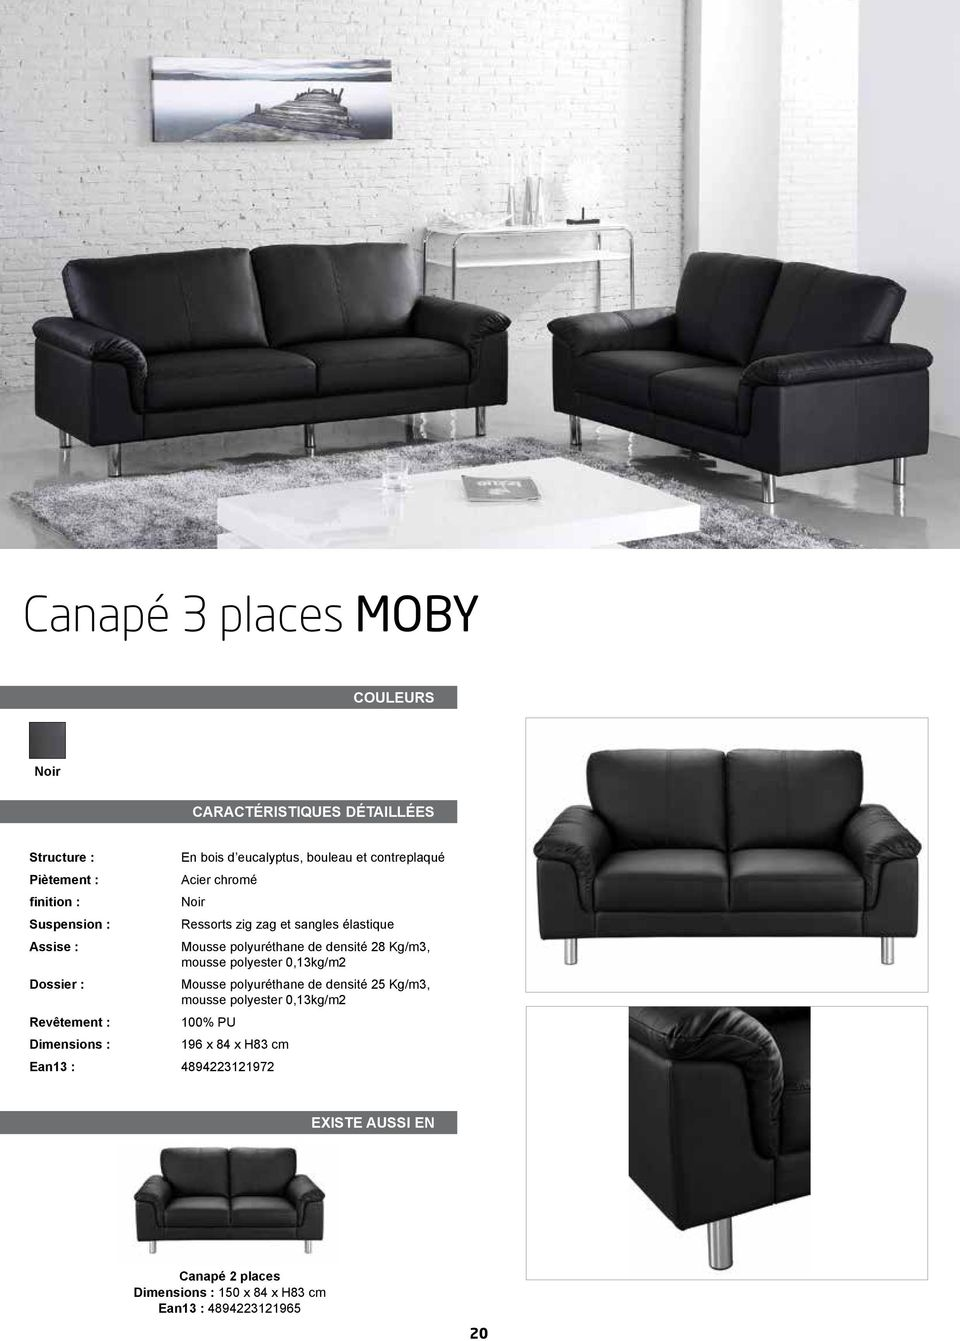 Collection mobilier 2012 pdf - Canape mousse polyurethane ...